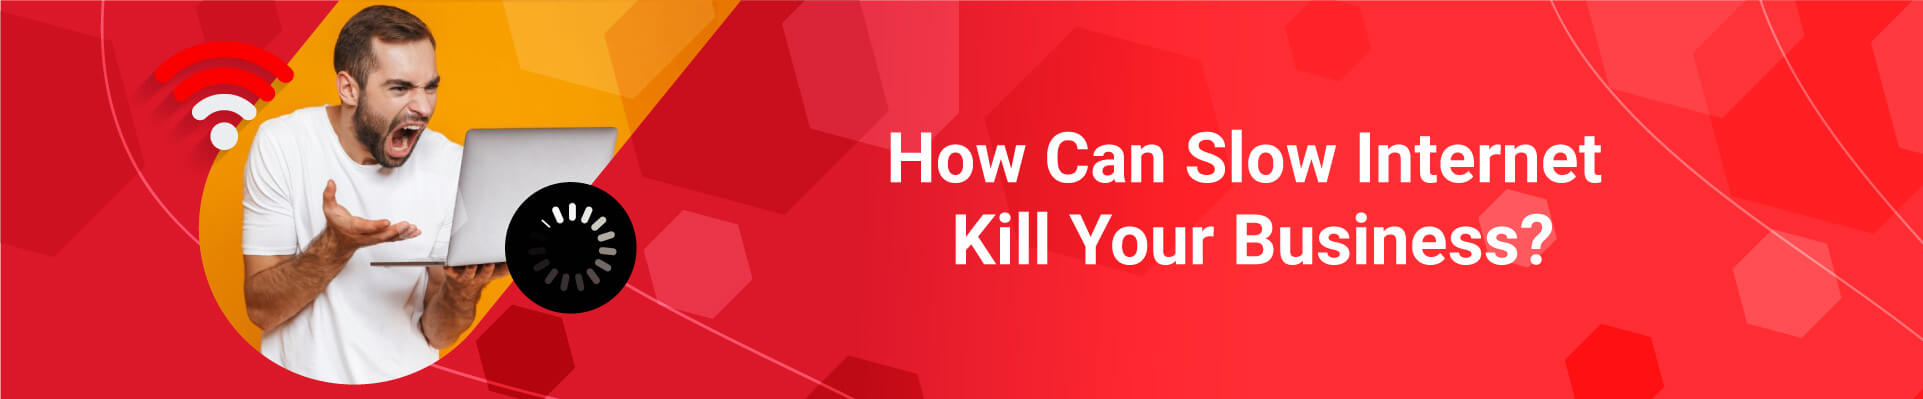 How can Slow Internet Connection Kill Your Business?